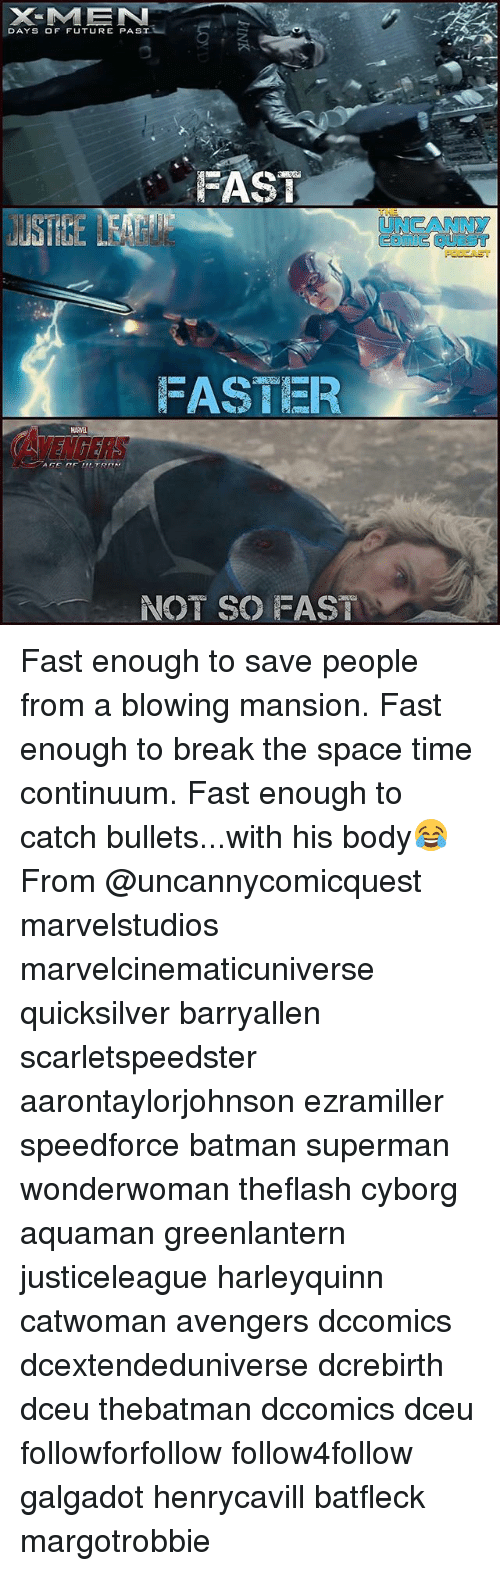 quicksilver: X-MAN  DAYS OF FUTURE PAST  FAST  UNCANNY  CoMc QUEST  FASTER  MARVEL  VENGERS  NOT SO FAST Fast enough to save people from a blowing mansion. Fast enough to break the space time continuum. Fast enough to catch bullets...with his body😂 From @uncannycomicquest marvelstudios marvelcinematicuniverse quicksilver barryallen scarletspeedster aarontaylorjohnson ezramiller speedforce batman superman wonderwoman theflash cyborg aquaman greenlantern justiceleague harleyquinn catwoman avengers dccomics dcextendeduniverse dcrebirth dceu thebatman dccomics dceu followforfollow follow4follow galgadot henrycavill batfleck margotrobbie